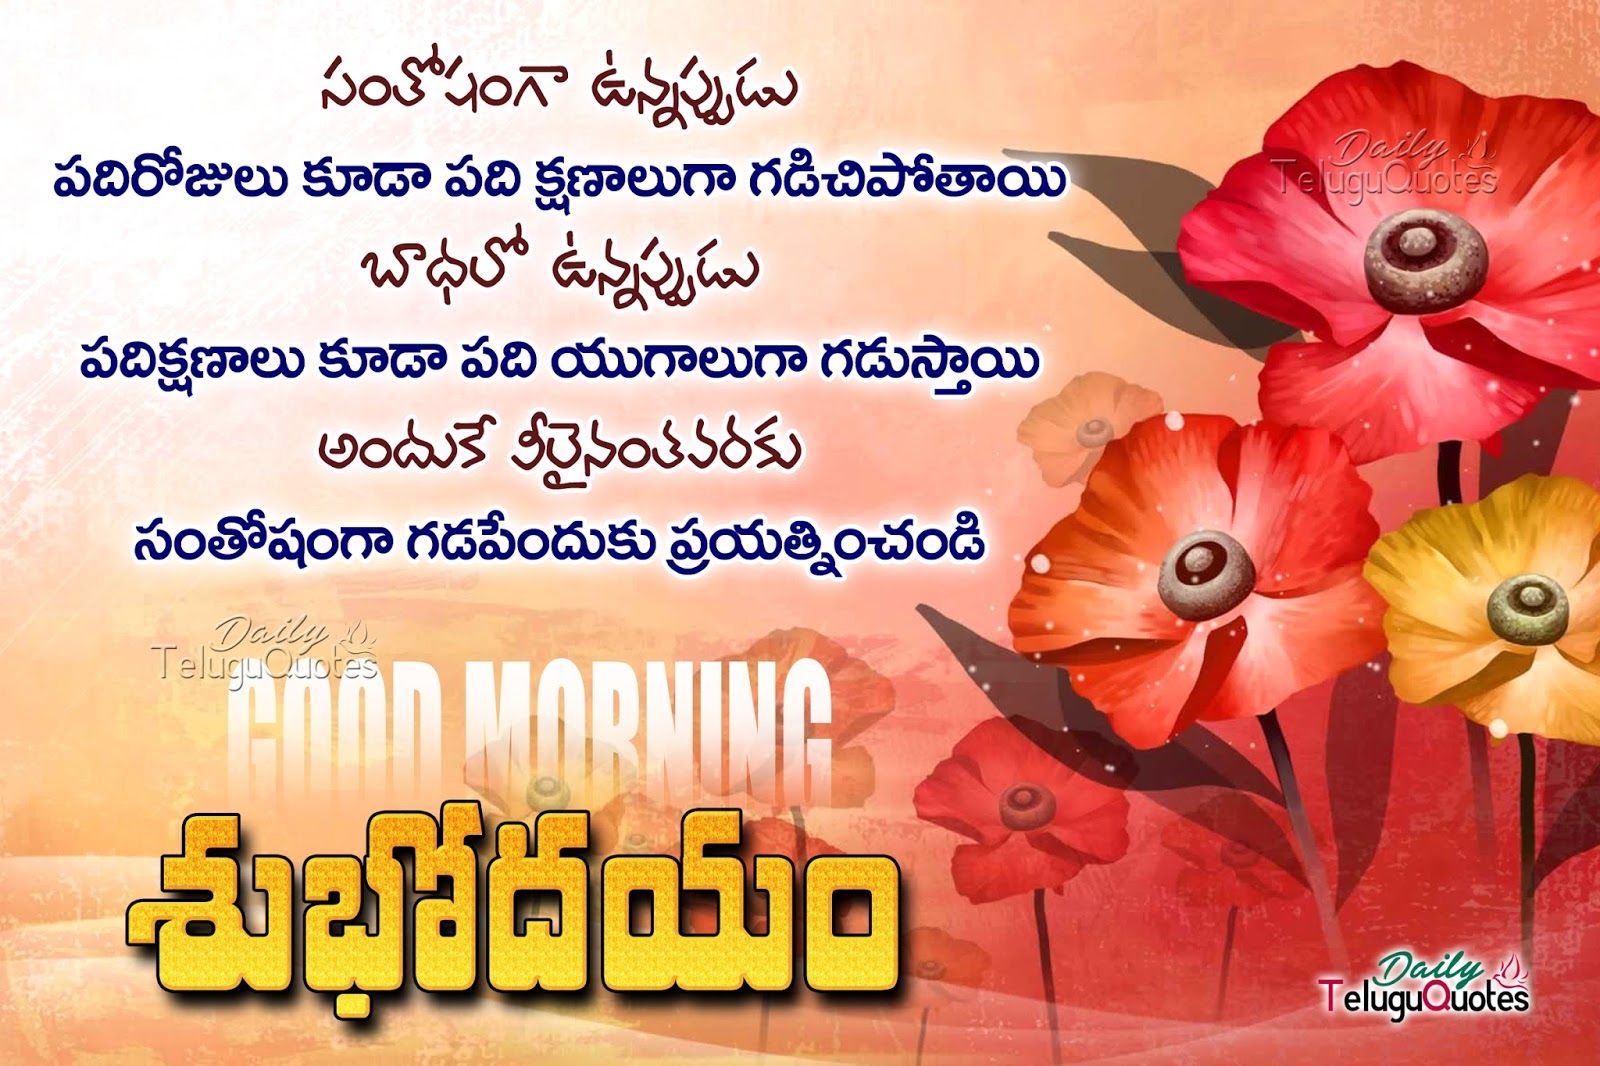 Daily greetings messages gallery greeting card examples good morning telugu quotations wishes and greetings for facebook good morning telugu greetings quotes wishes sms kristyandbryce Choice Image